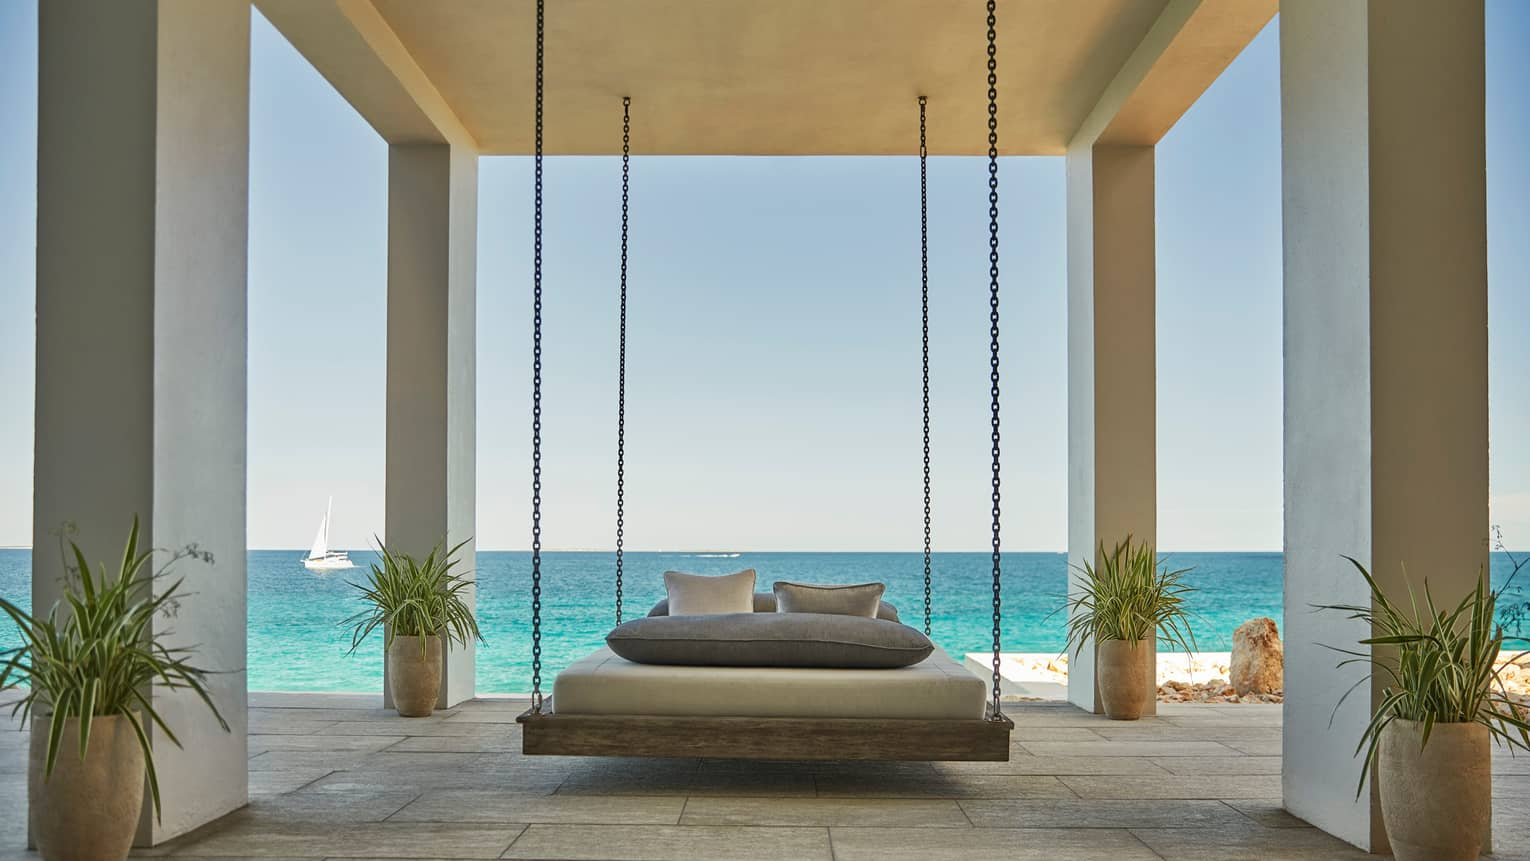 Patio bed hangs by chains from white ceiling in outdoor room with tropical potted plants, ocean view